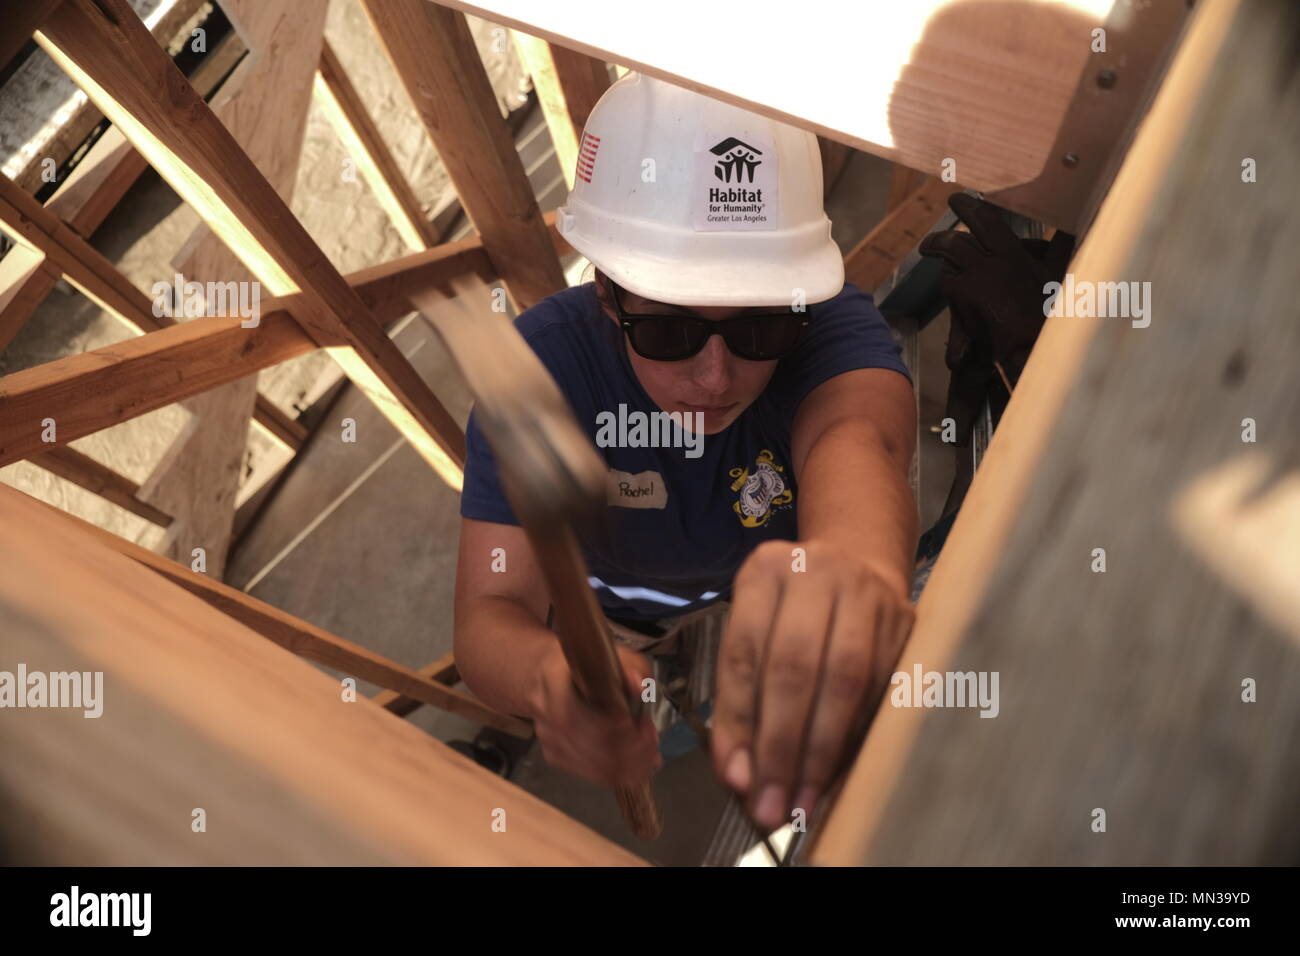 A Coast Guard servicewoman hammers nails into a building frame during the contruction of a townhouse hosted by Habitats for Humanity in Long Beach, Calif., as part of LA Fleet Week 2017, Aug. 31. LA Fleet Week is an opportunity for the American public to meet their Navy, Marine Corps and Coast Guard team and experience America's sea services. During fleet week, service members will participate in various community service events, showcase capabilities and equipment to the community, and enjoy the hospitality of Los Angeles and surrounding areas have to offer. (U.S. Marine Corps photo by Cpl. D - Stock Image